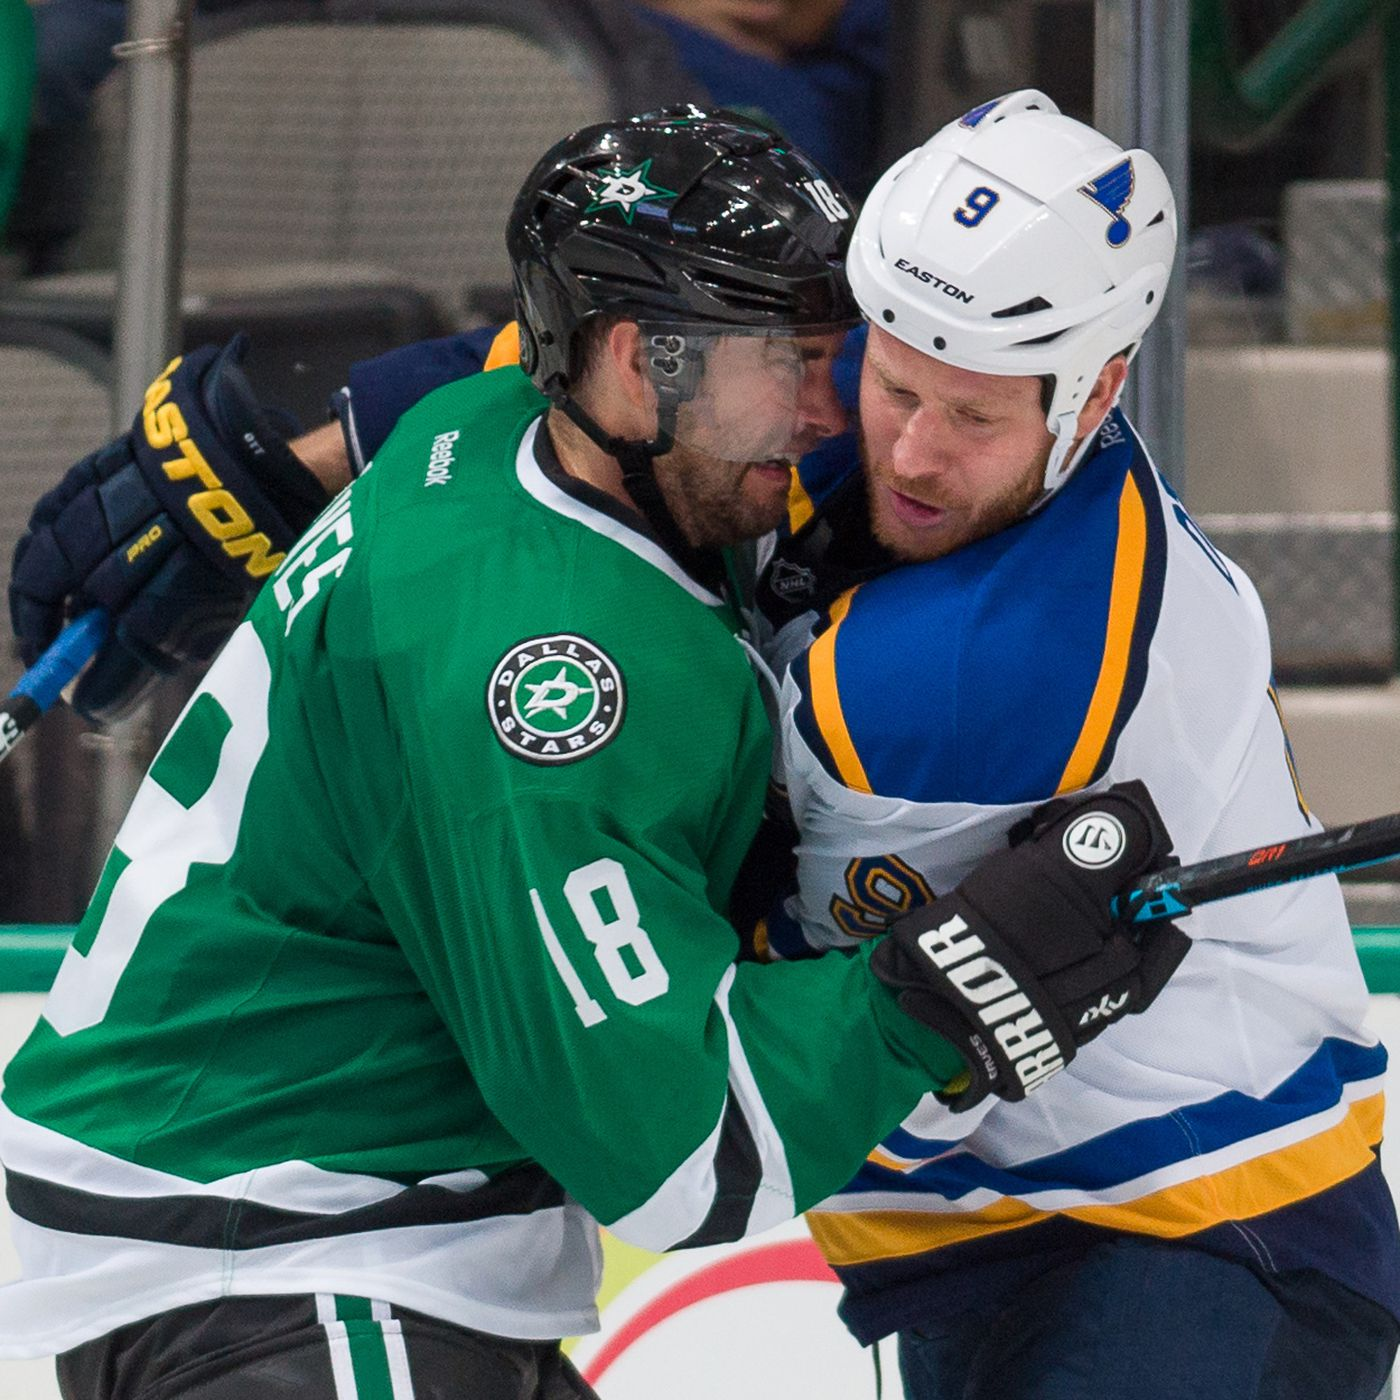 reputable site fb6c9 6d95f Dallas Stars Forward Patrick Eaves Out With Leg Injury ...